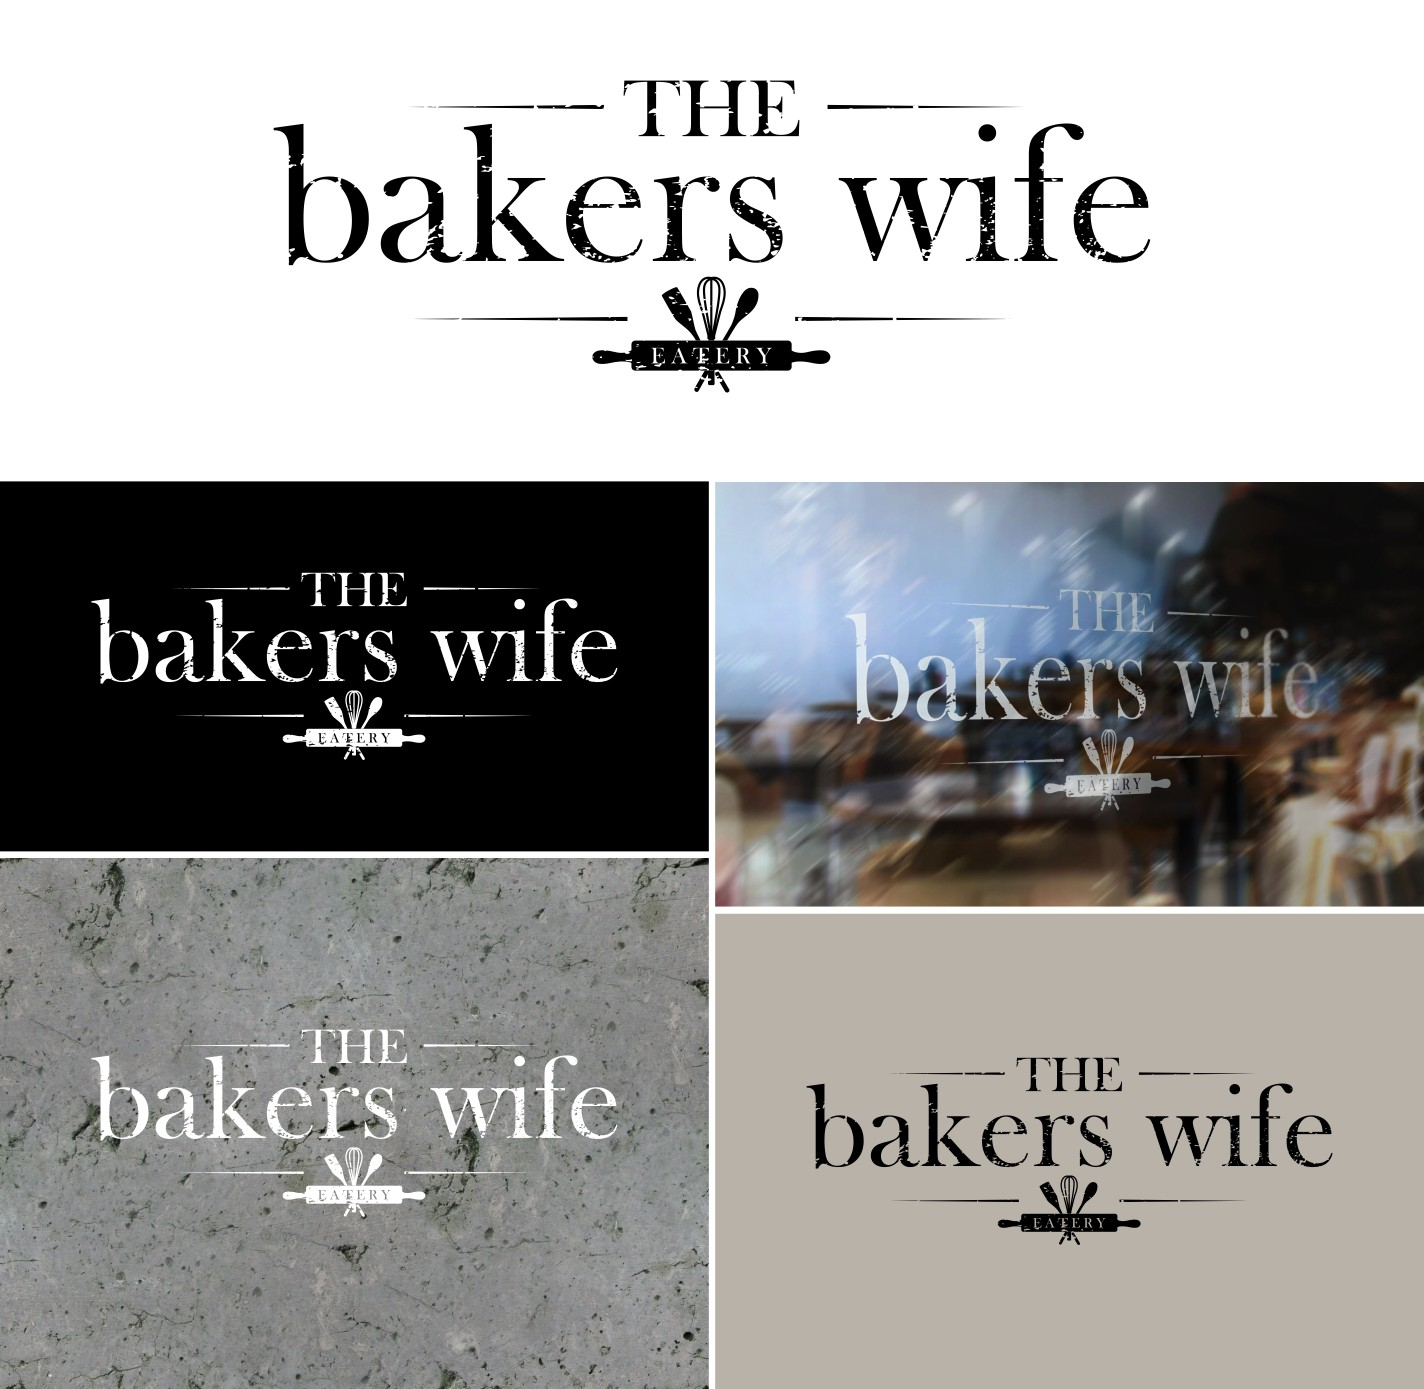 Create the next logo and business card for The bakers wife